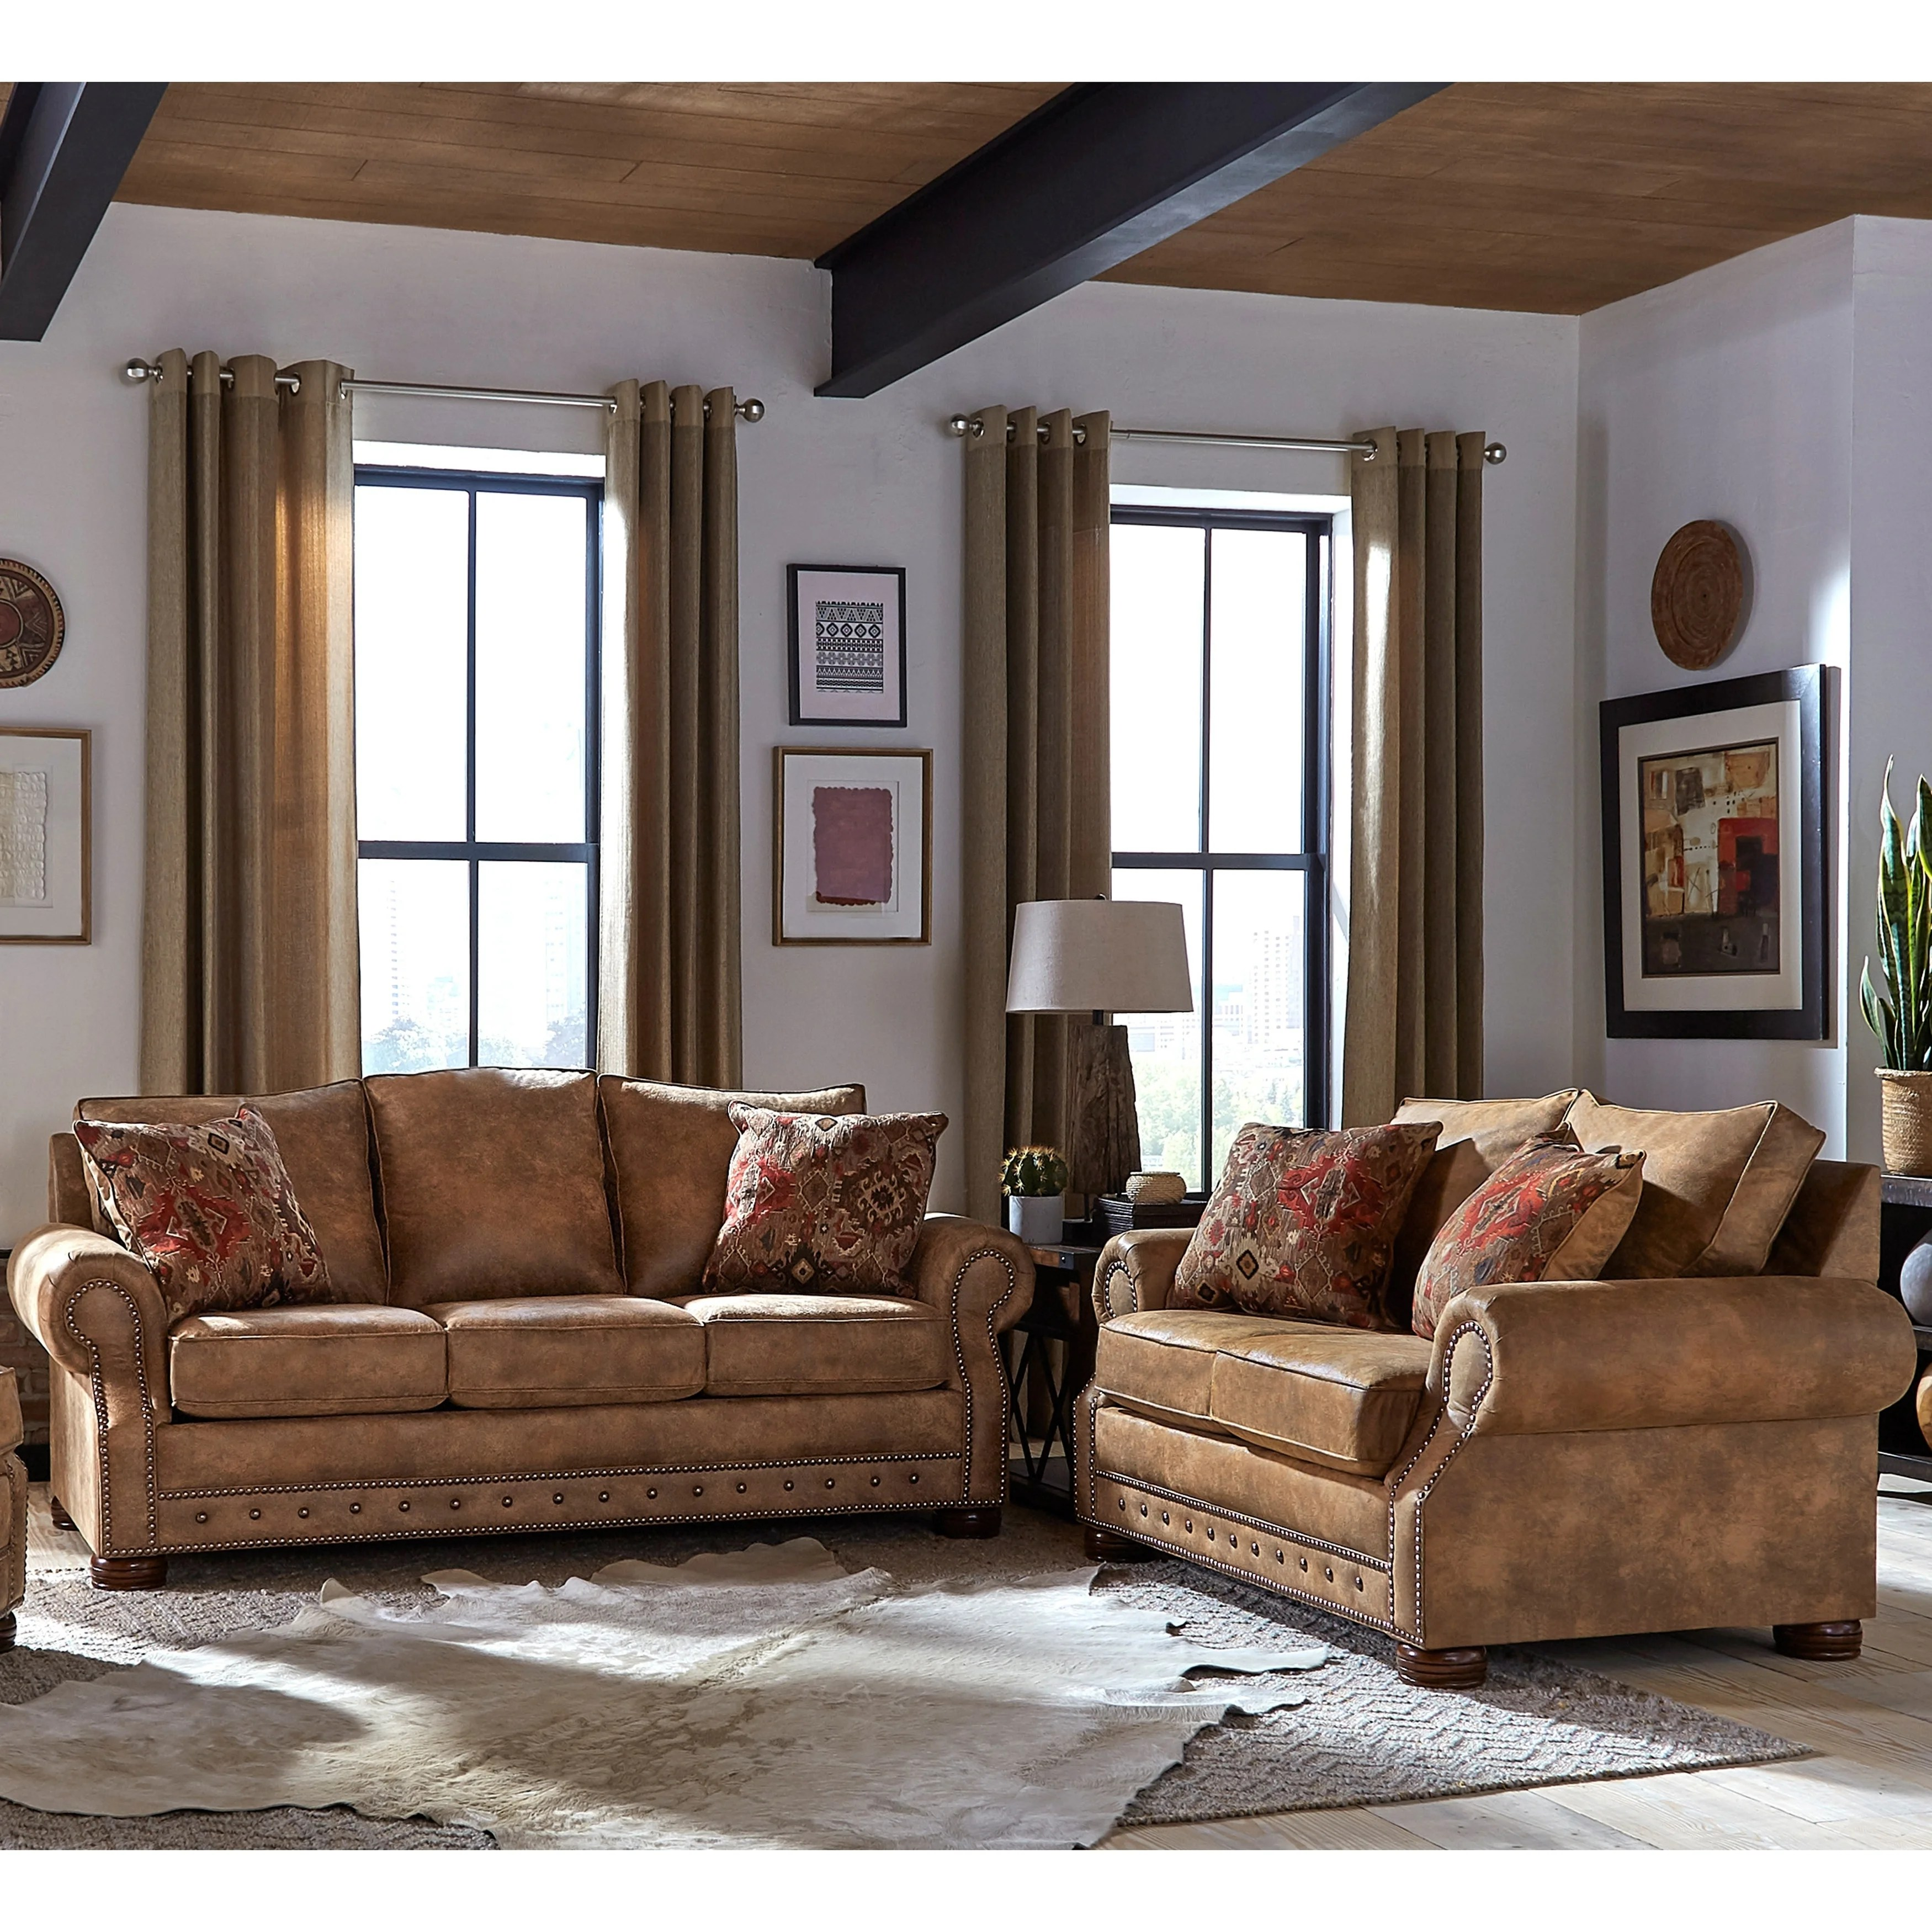 Made In Usa Rancho Rustic Brown Buckskin Fabric Sofa And Loveseat On Sale Overstock 27415174